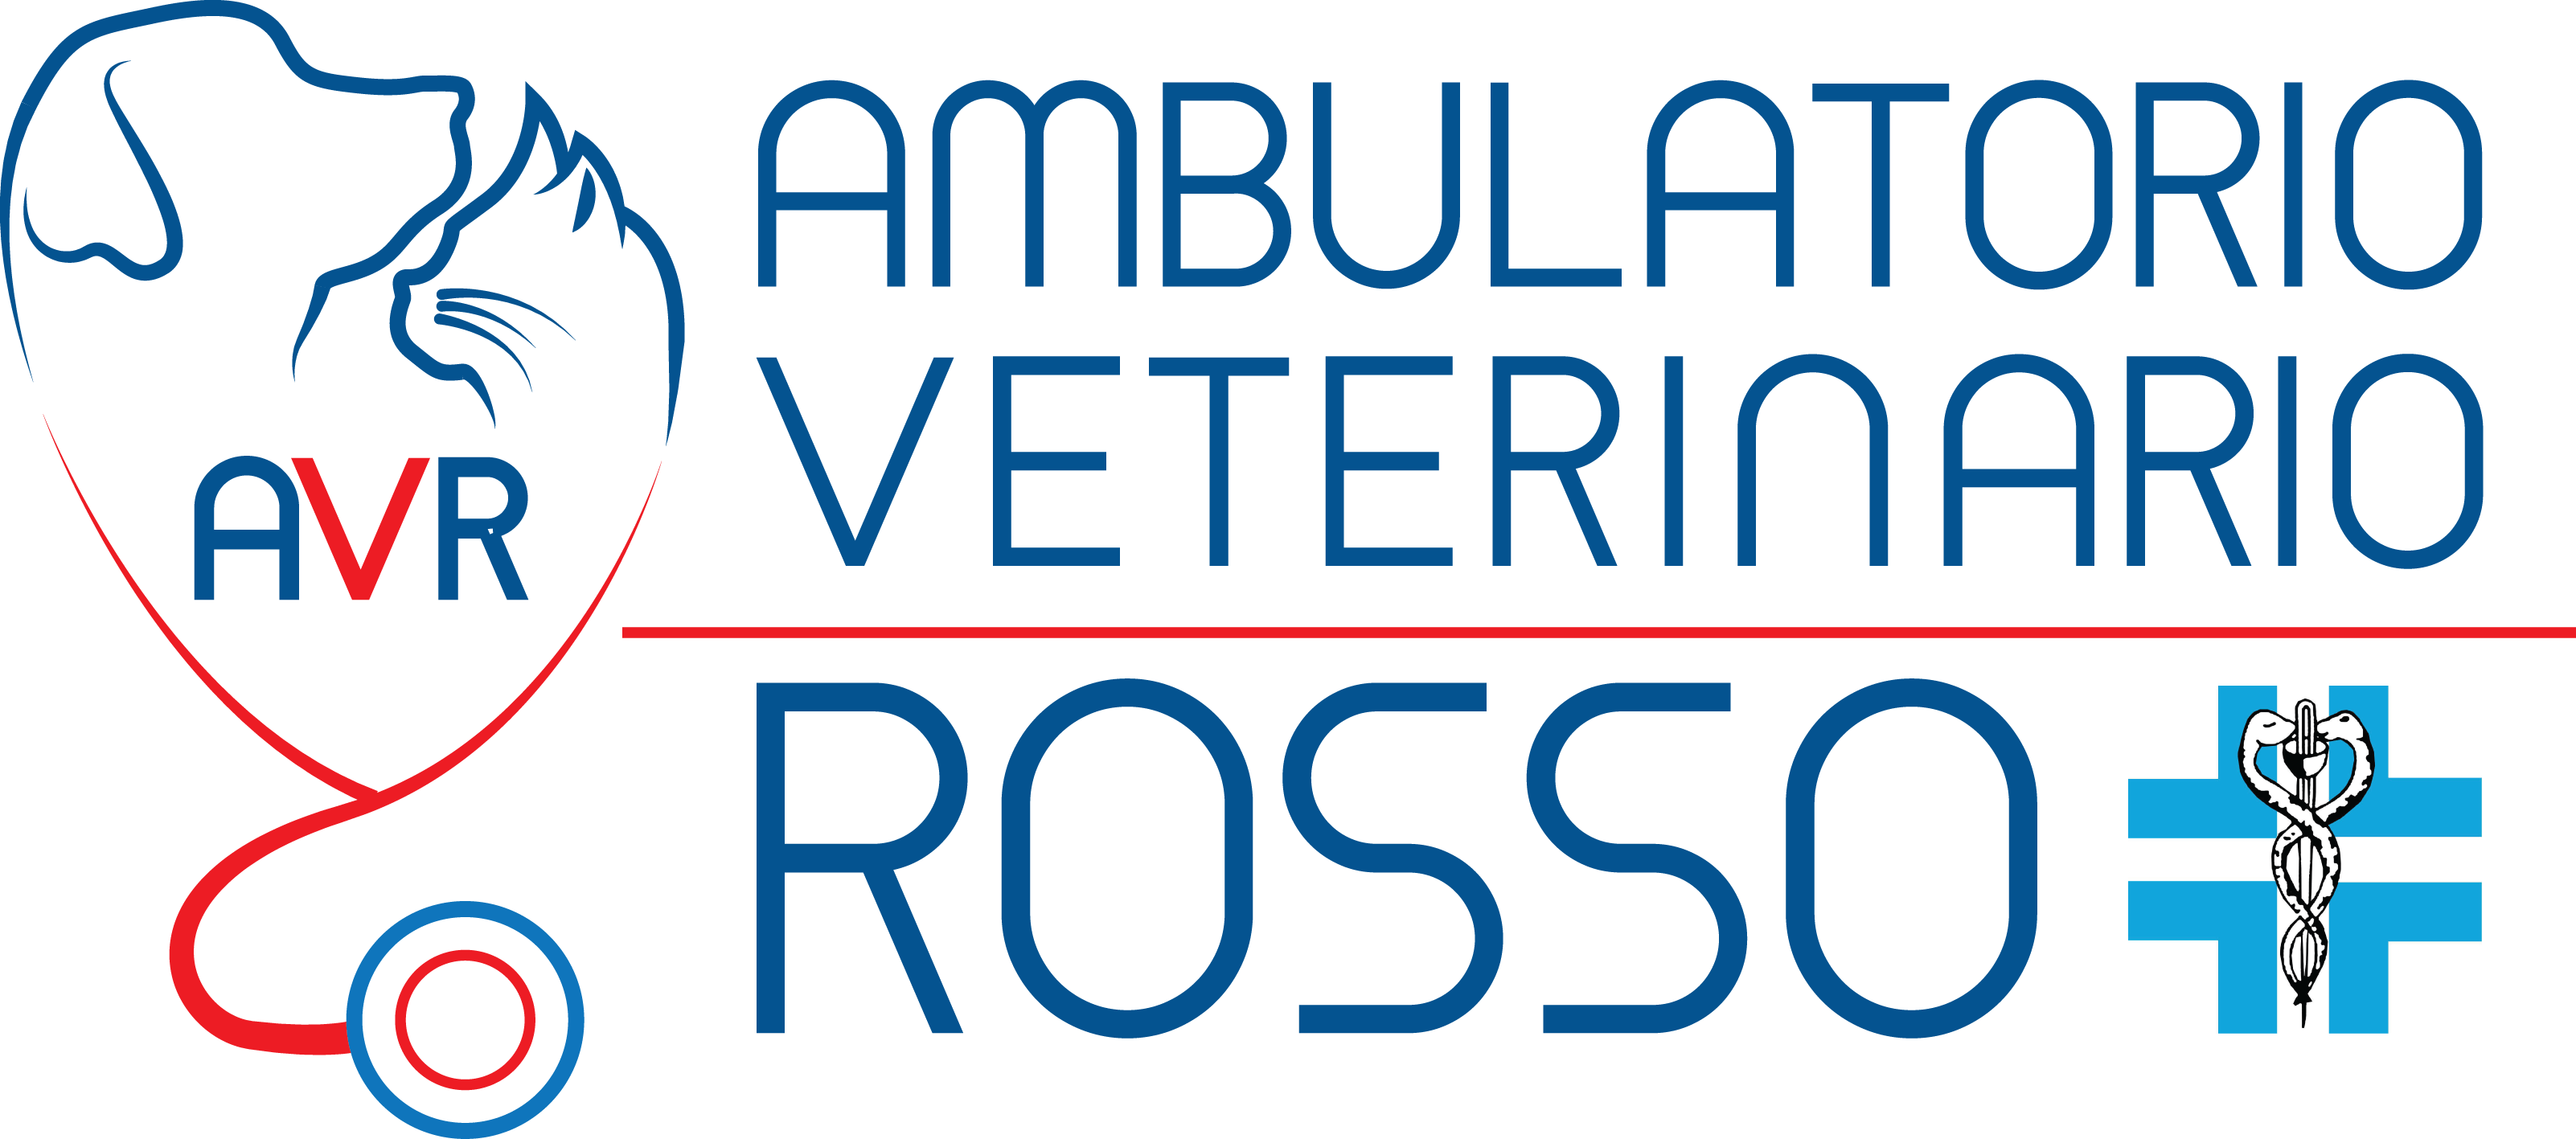 Ambulatorio Veterinario Rosso